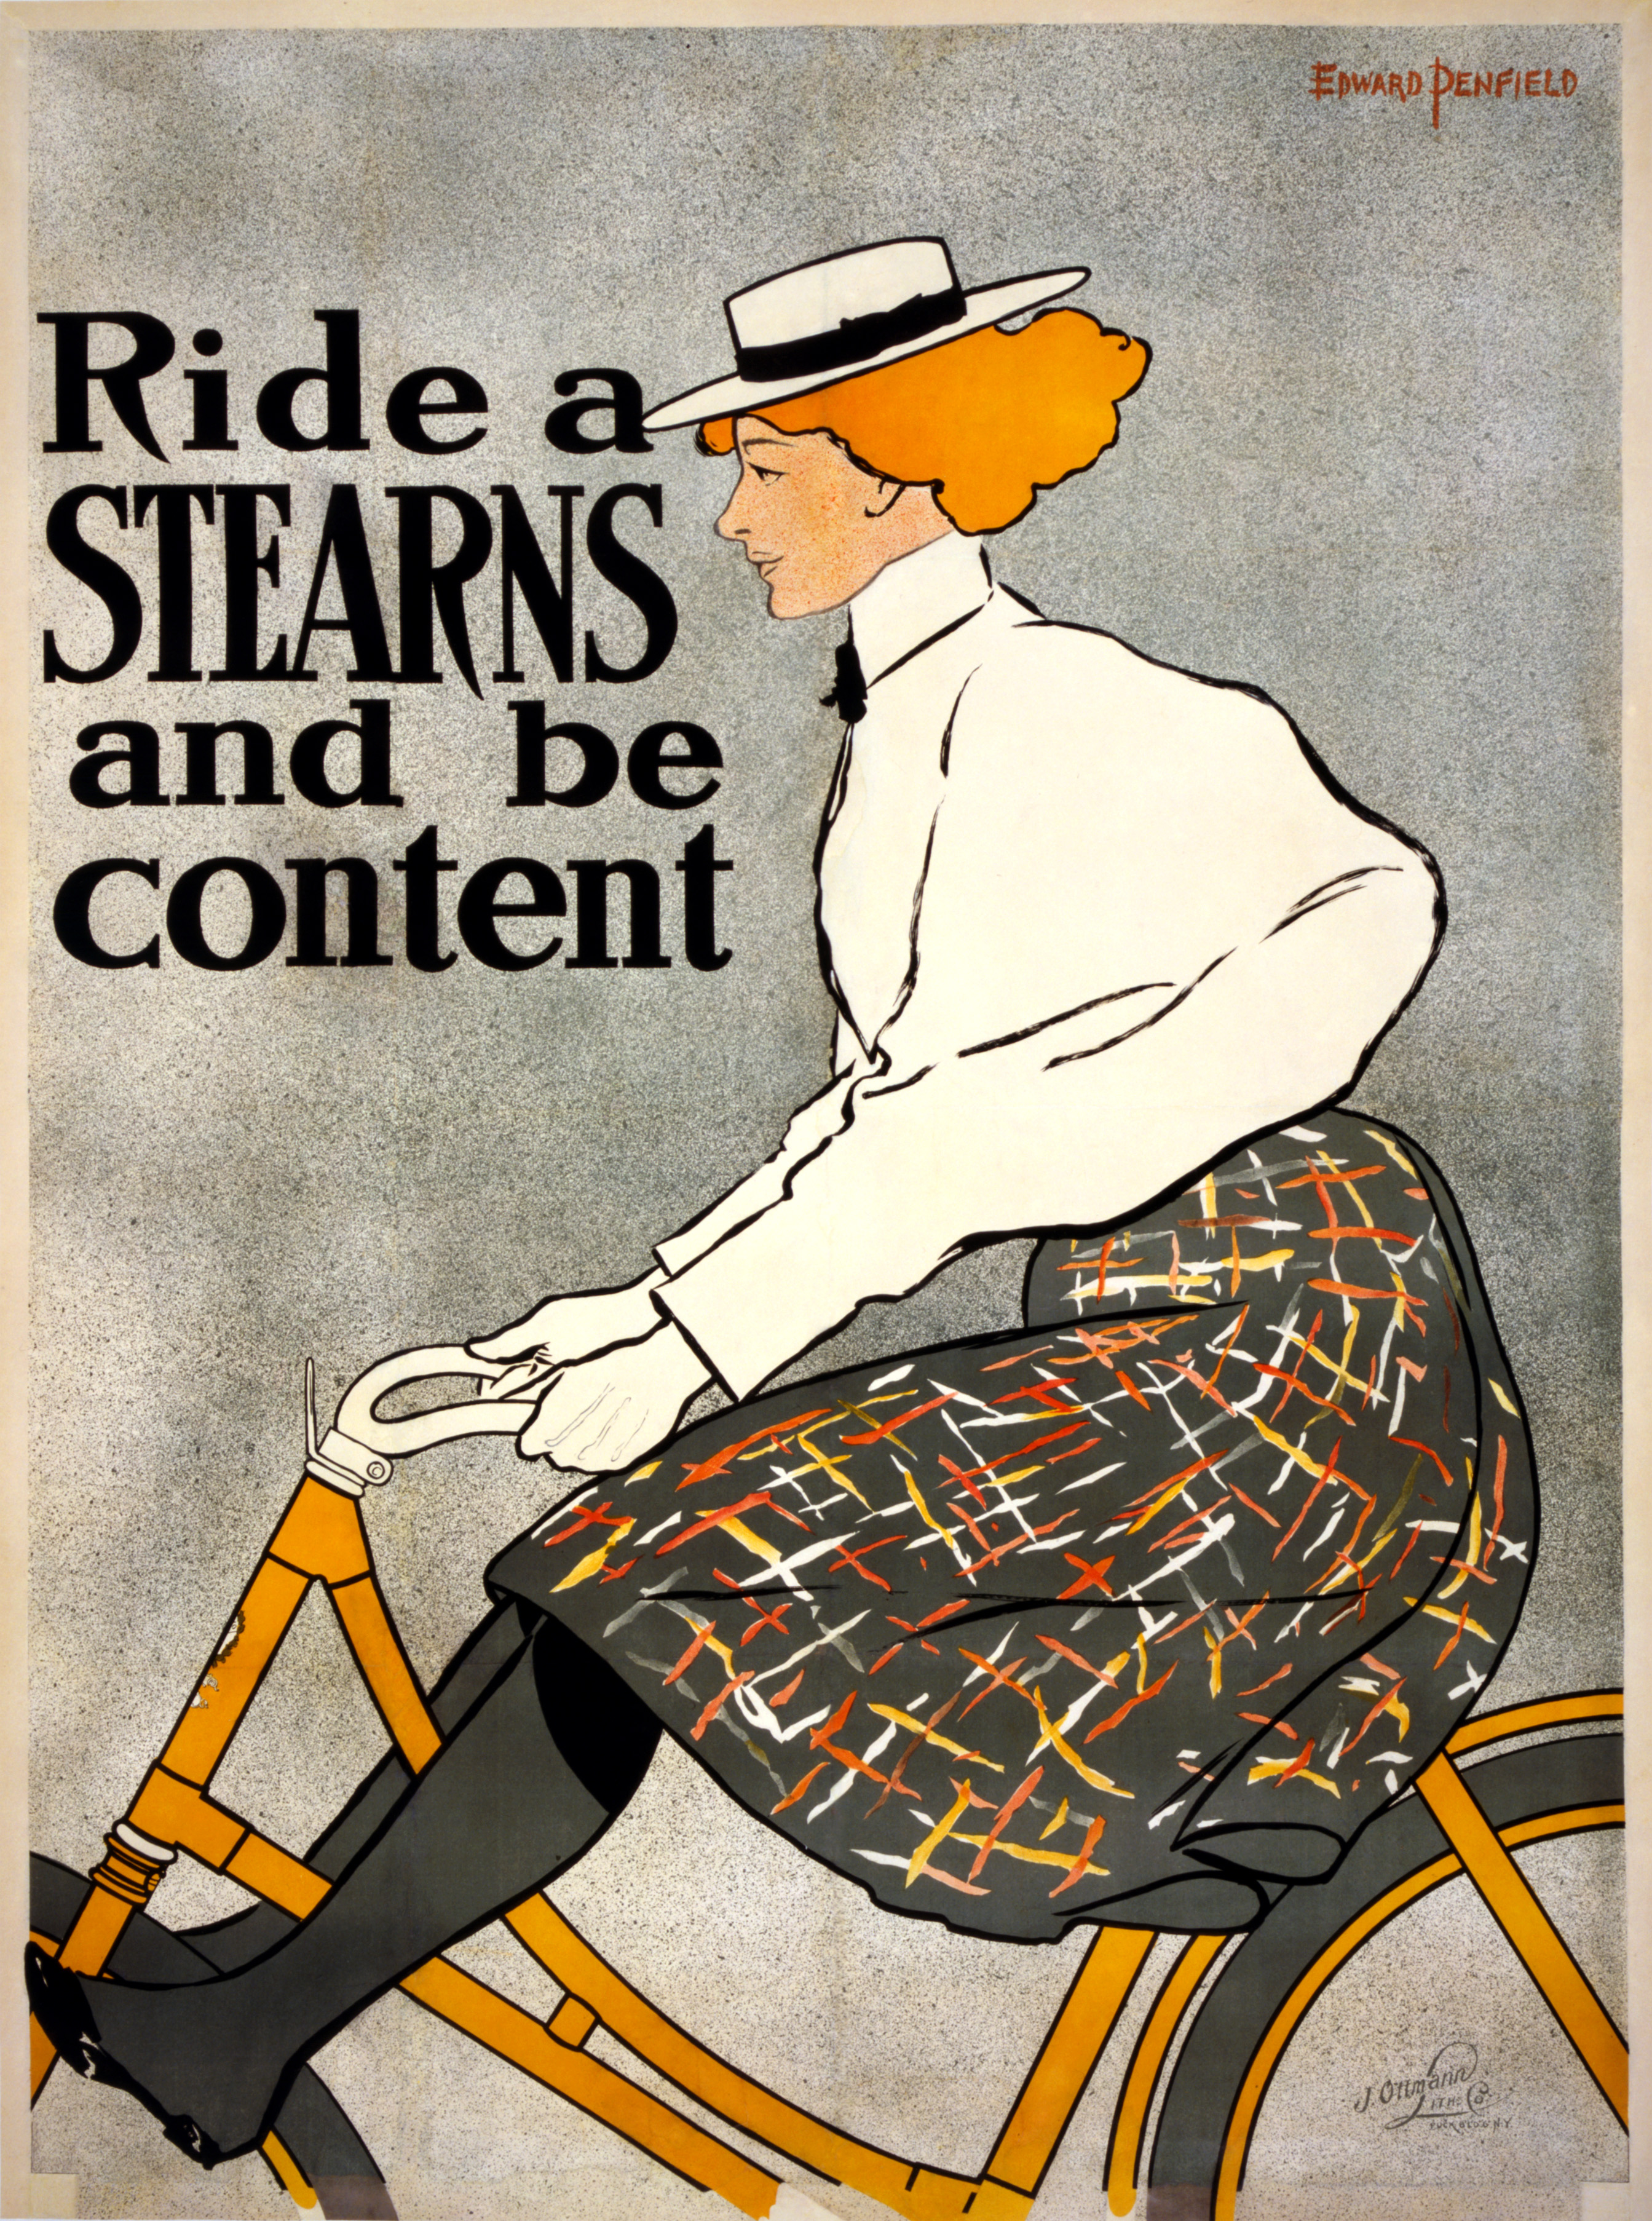 Vintage Bicycle Posters Foreshadow Car Ads • Petrolicious